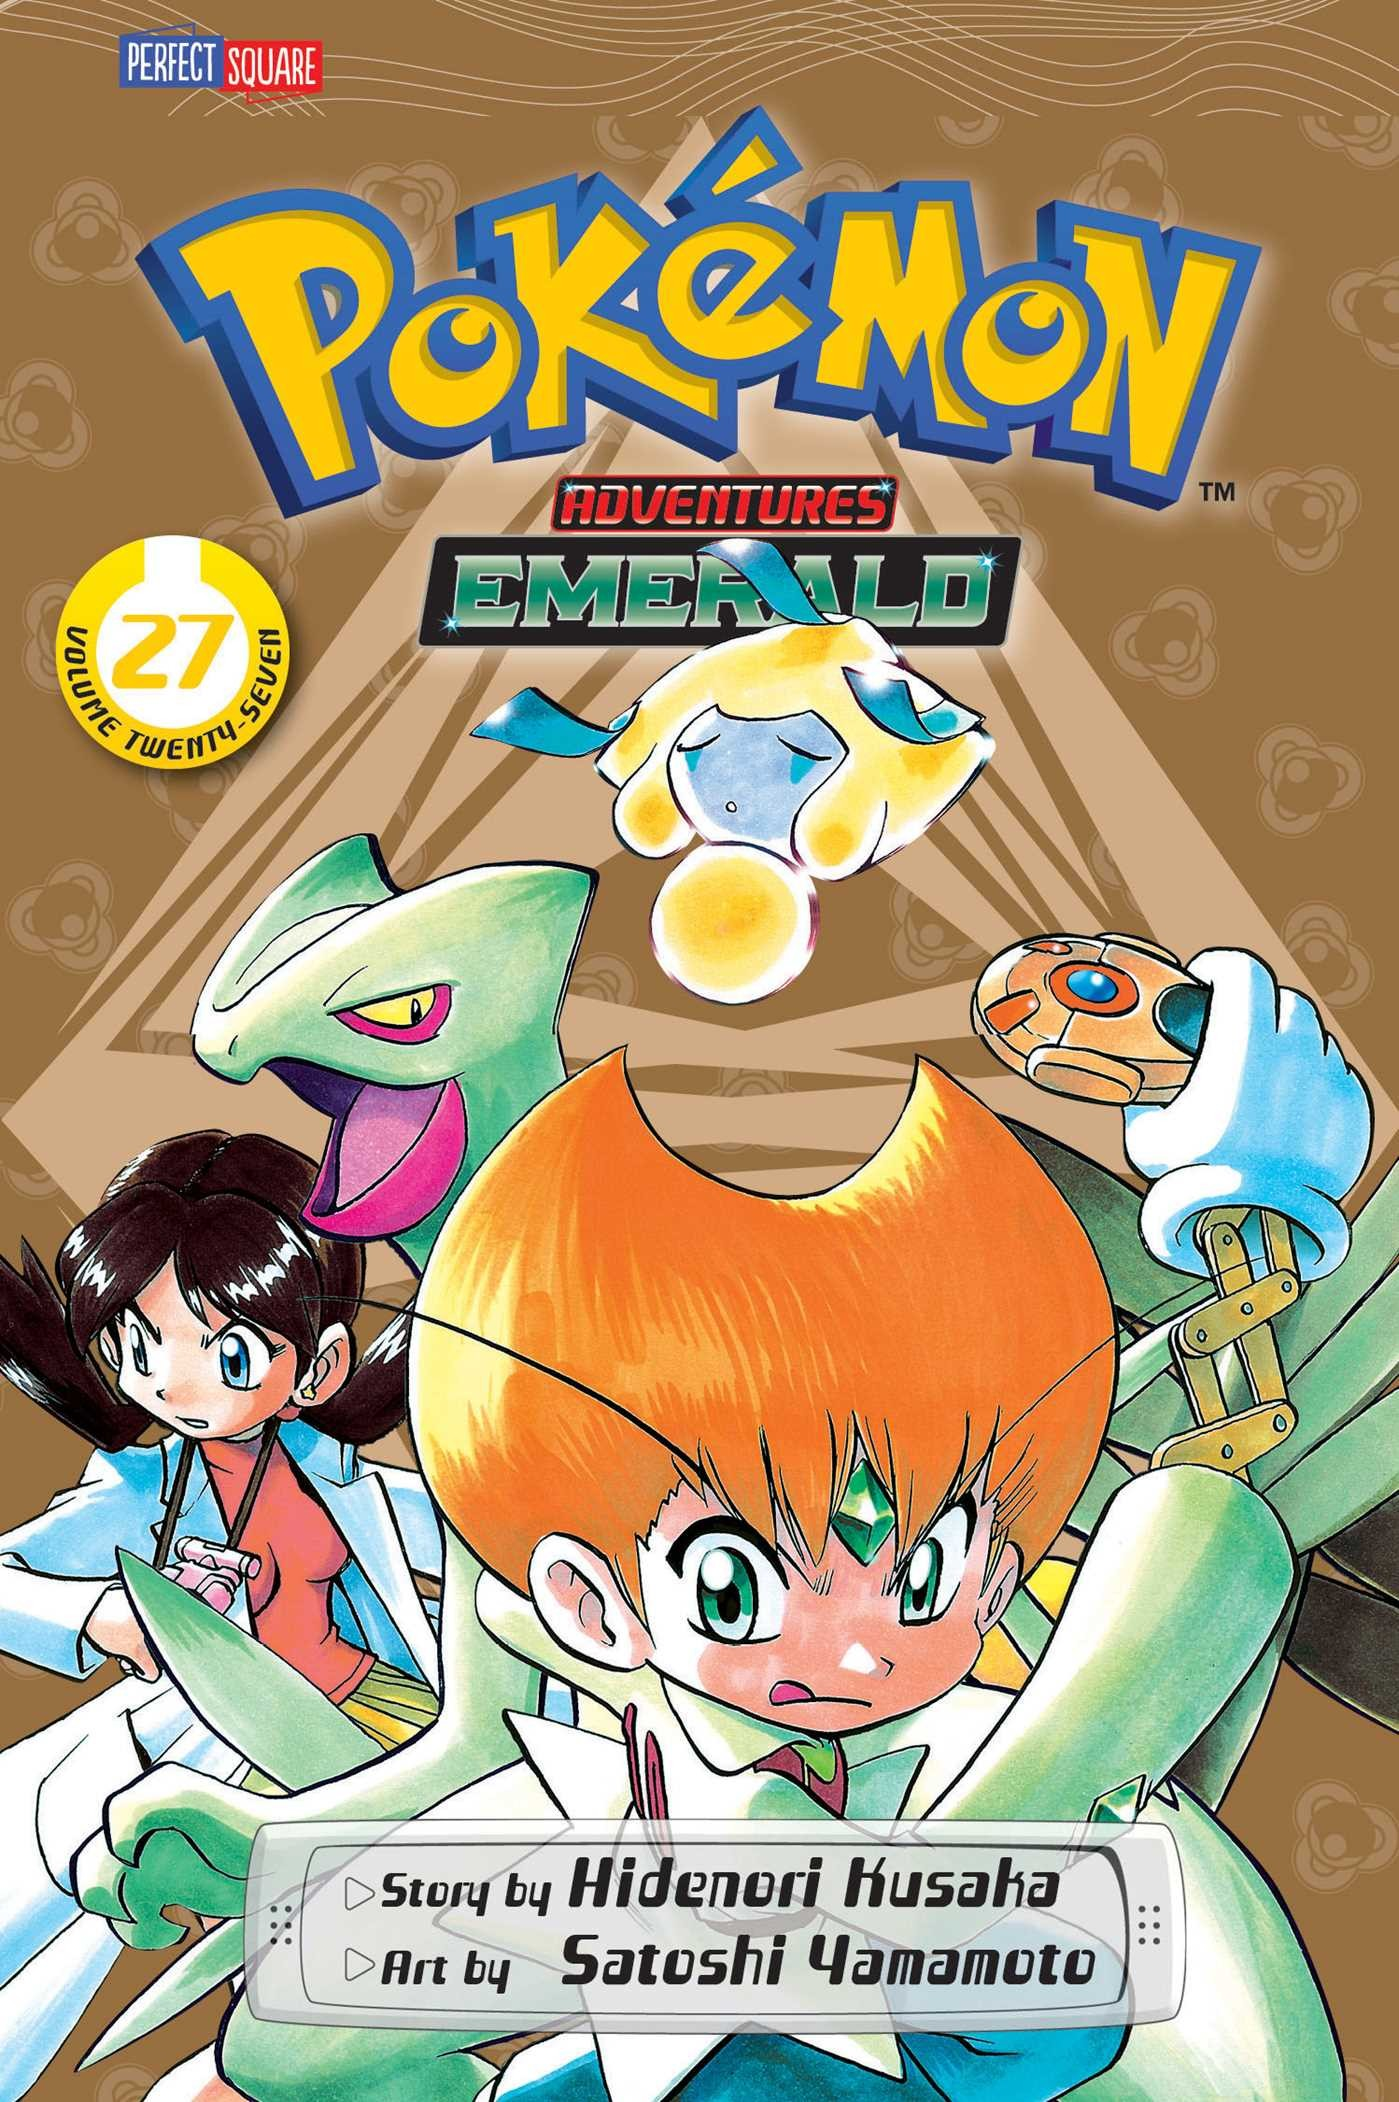 Pokémon Adventures, Vol. 27 by Hidenori Kusaka